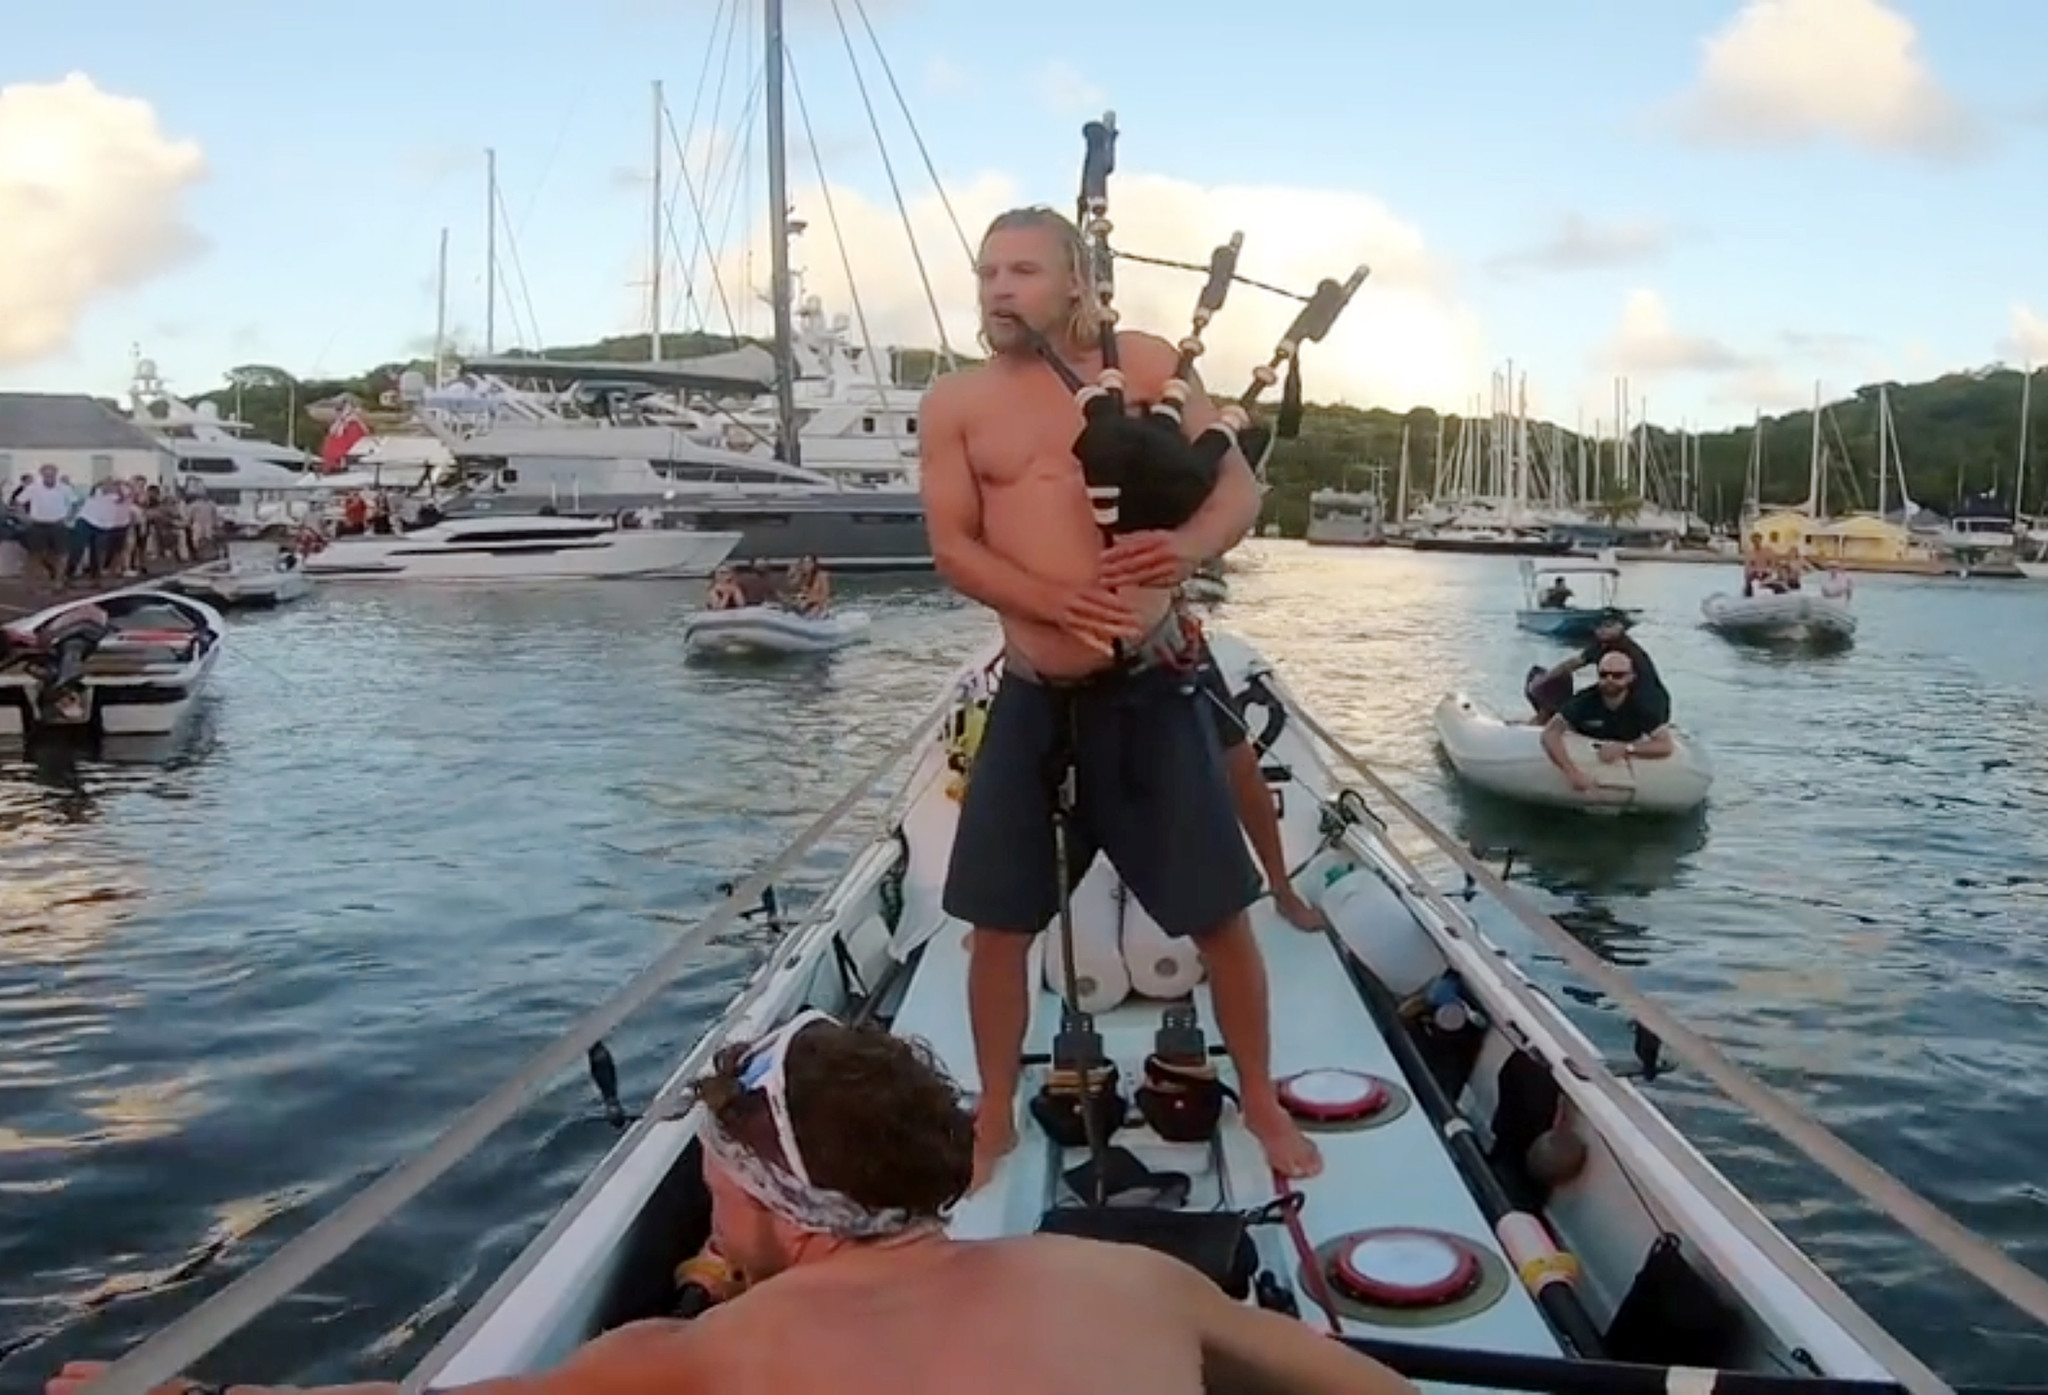 Scottish brothers row across the Atlantic Ocean in record-breaking time